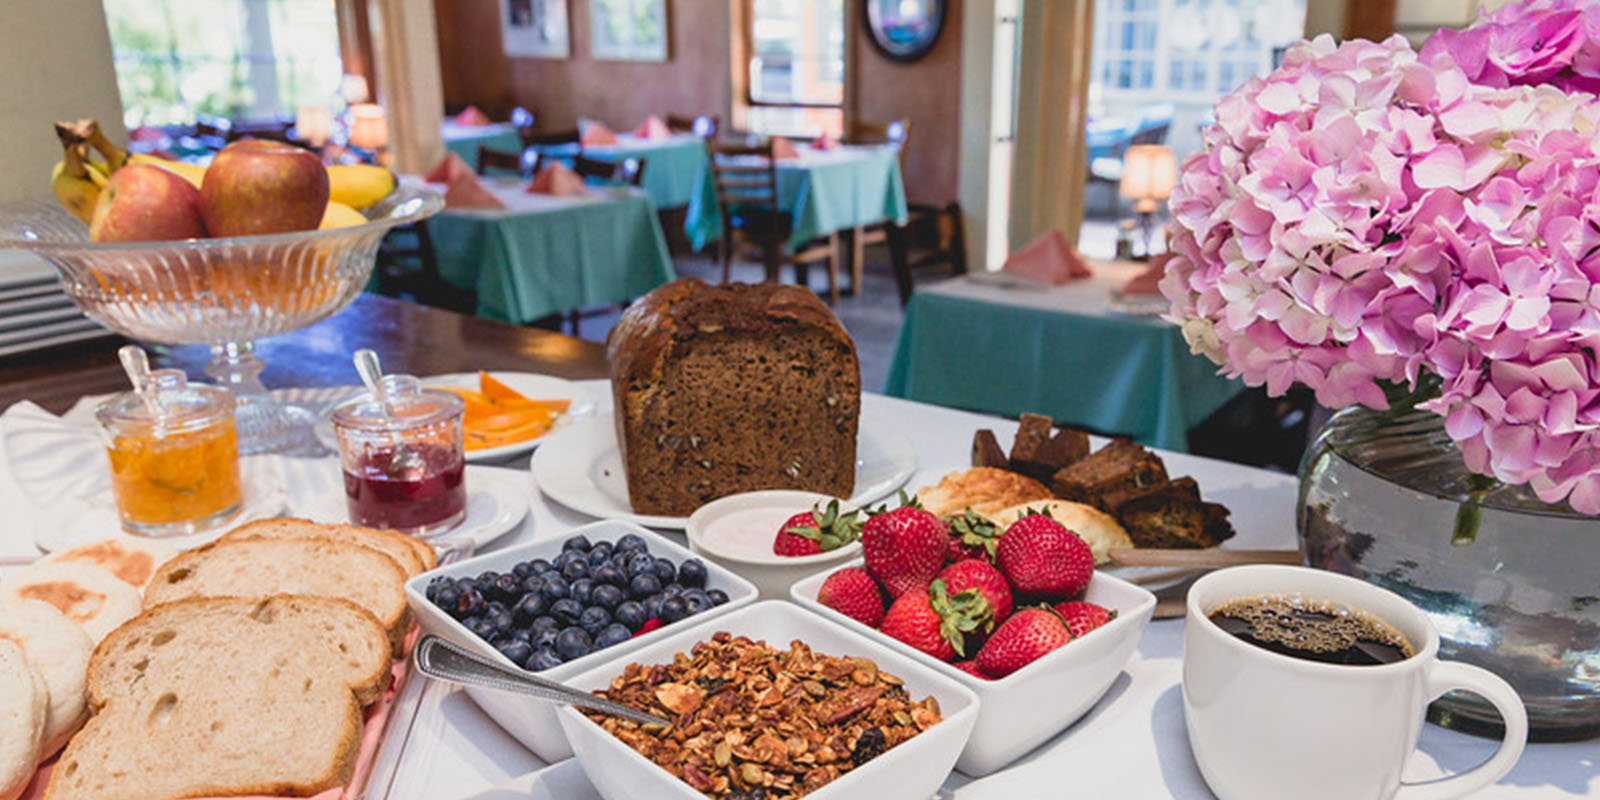 START THE DAY WITH A HOMEMADE CONTINENTAL BREAKFAST